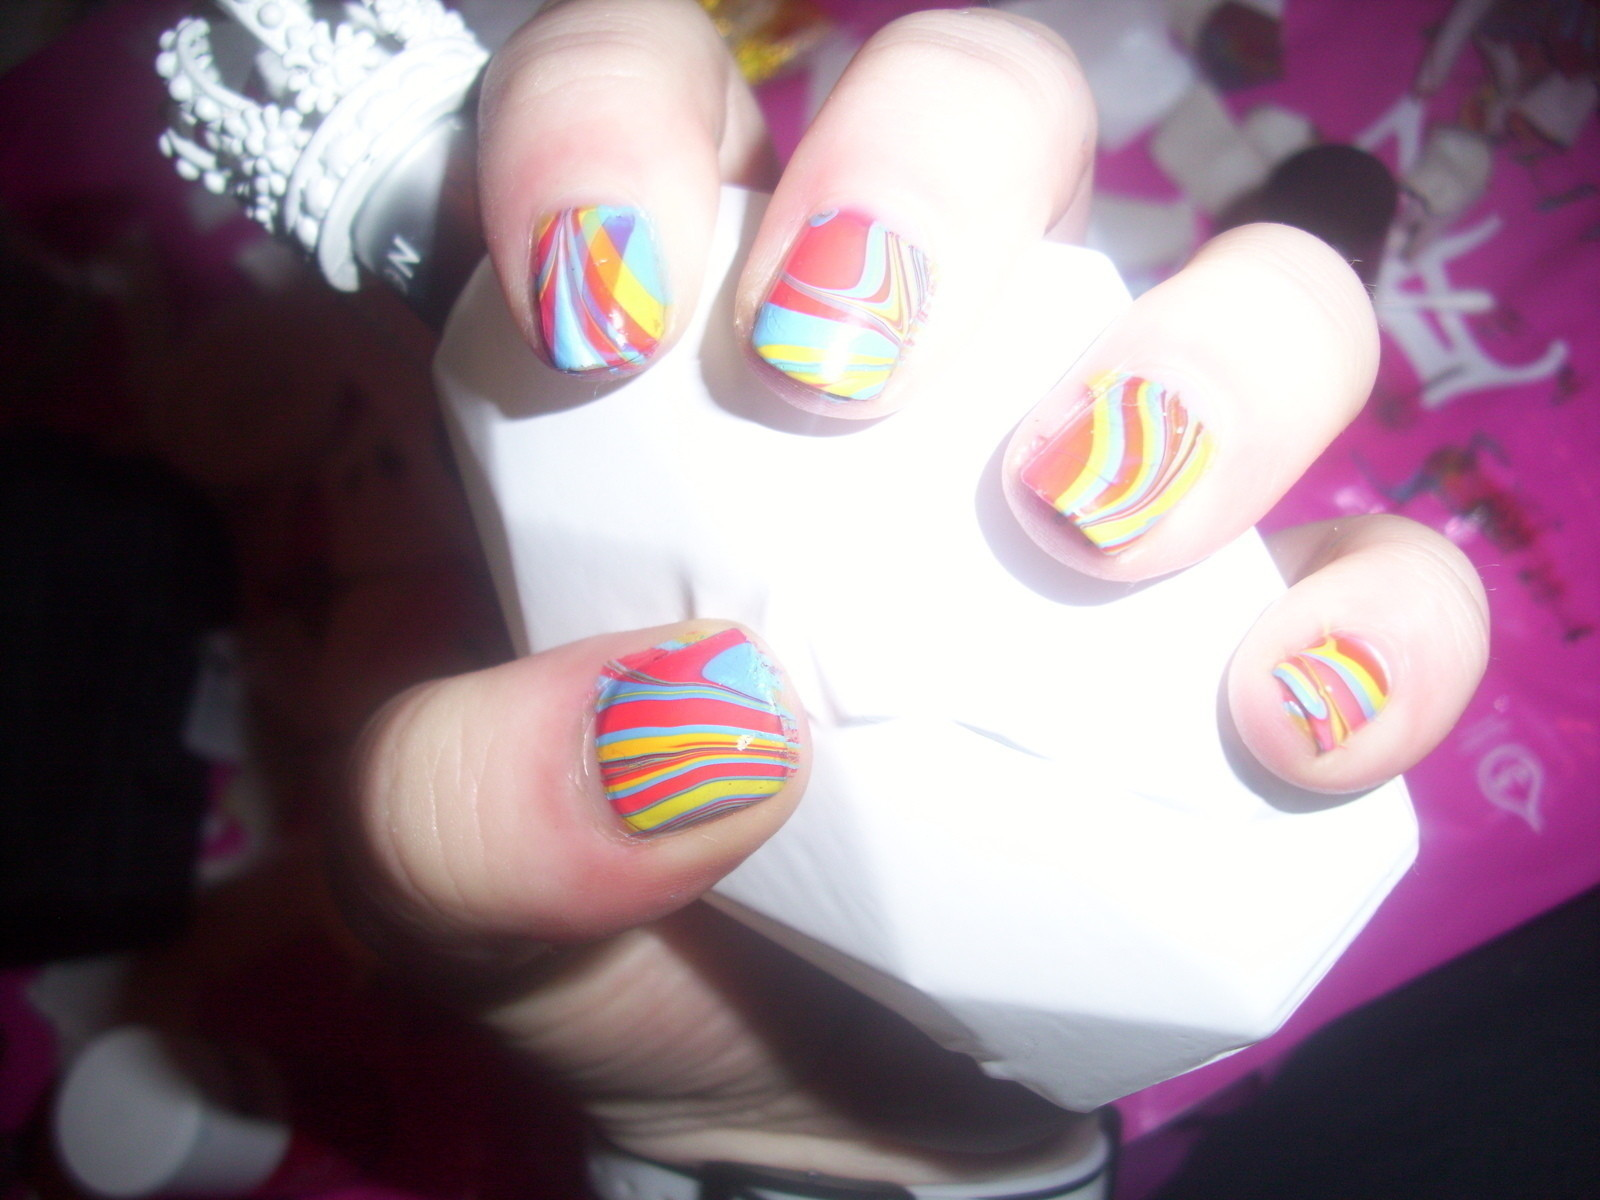 Swirl Nail Art Using Water How To Paint Patterned Painting And On Cut Out Keep